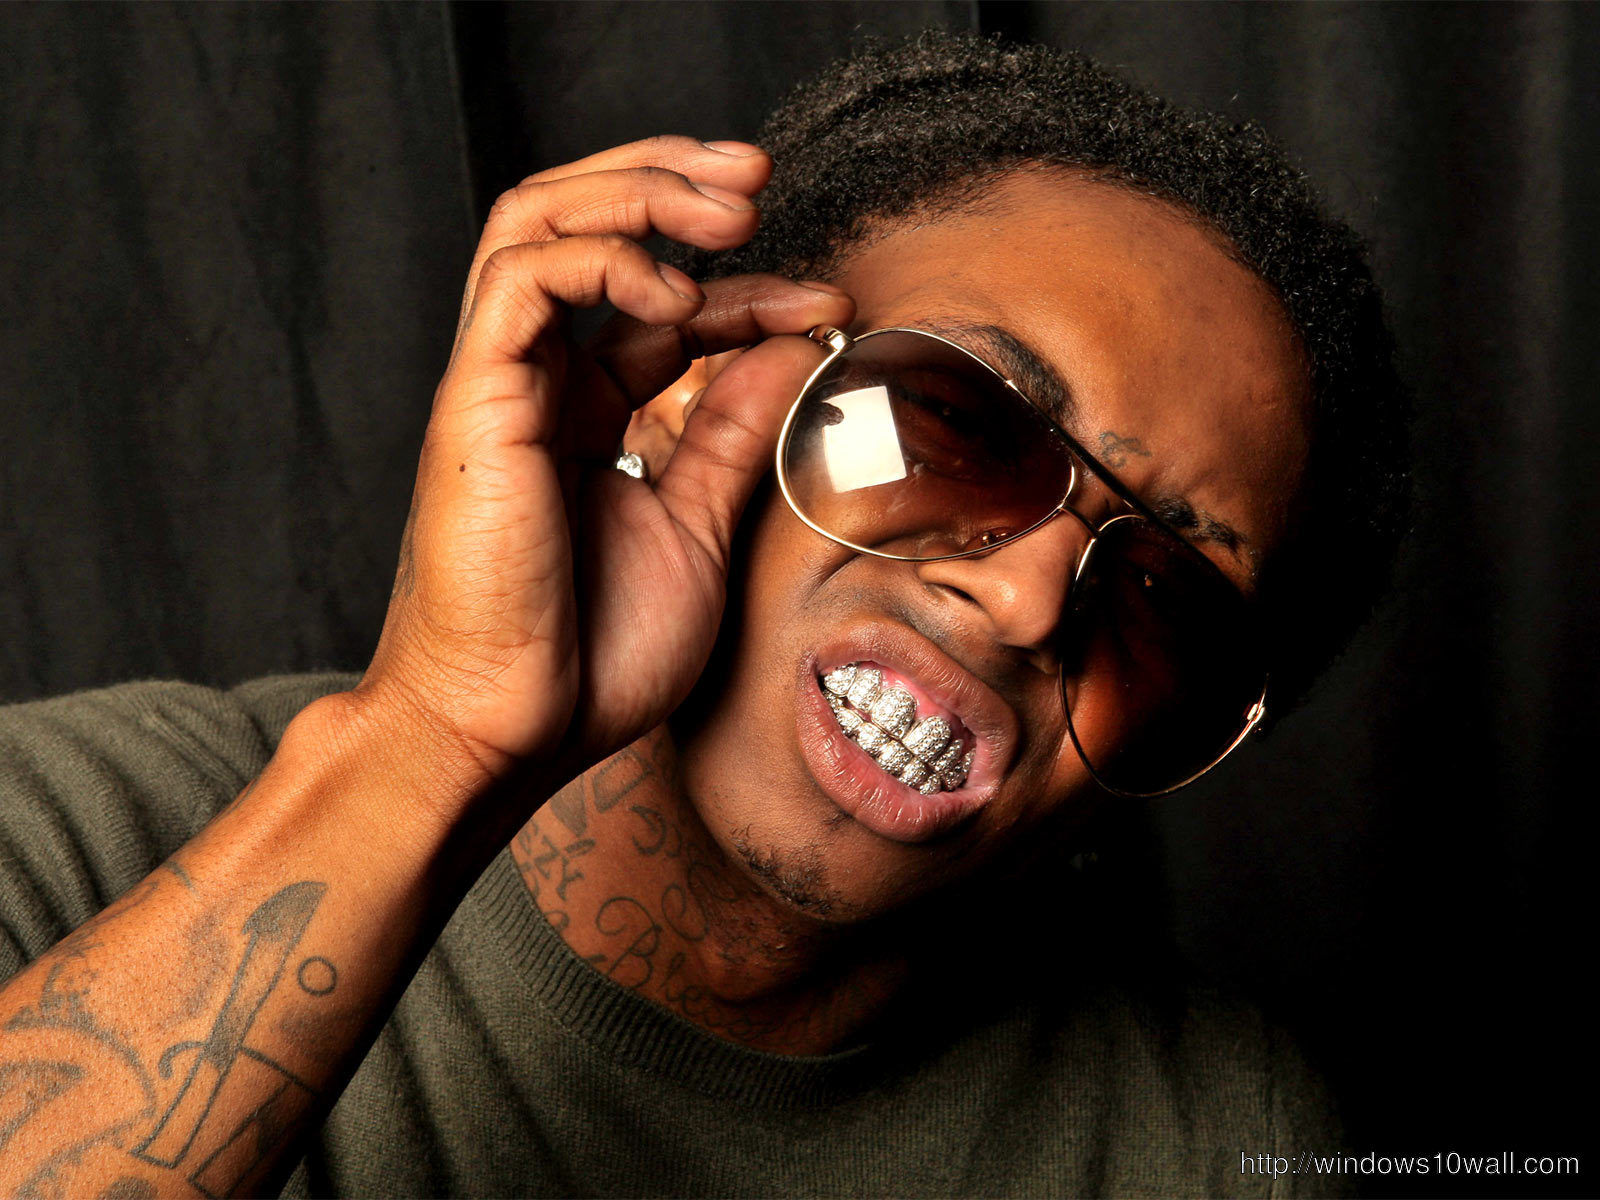 Lil Wayne Playing with Glasses Background Wallpaper